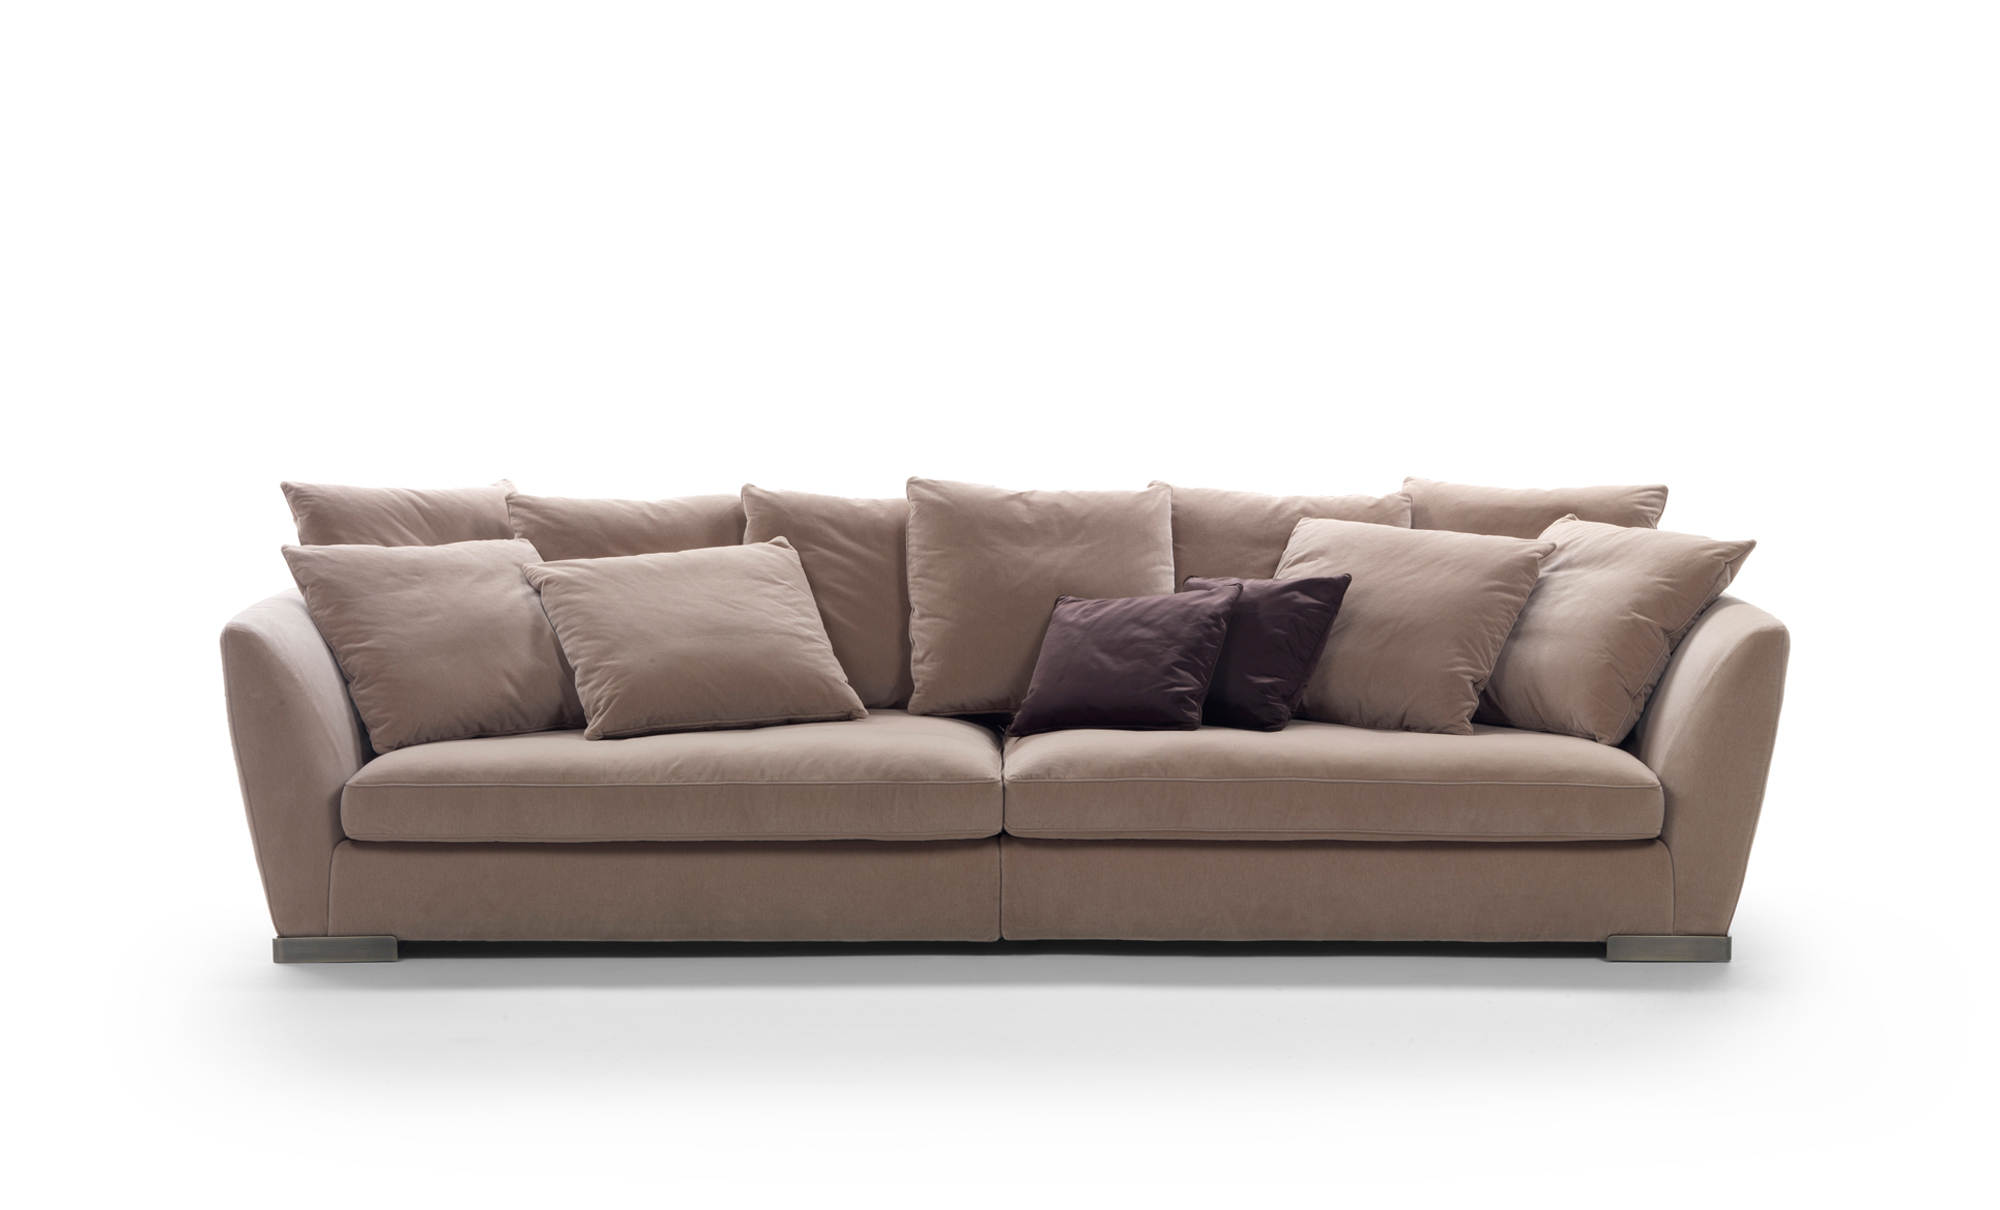 Couches And Sofas Ginevra Sofa By Flexform Mood Fanuli Furniture